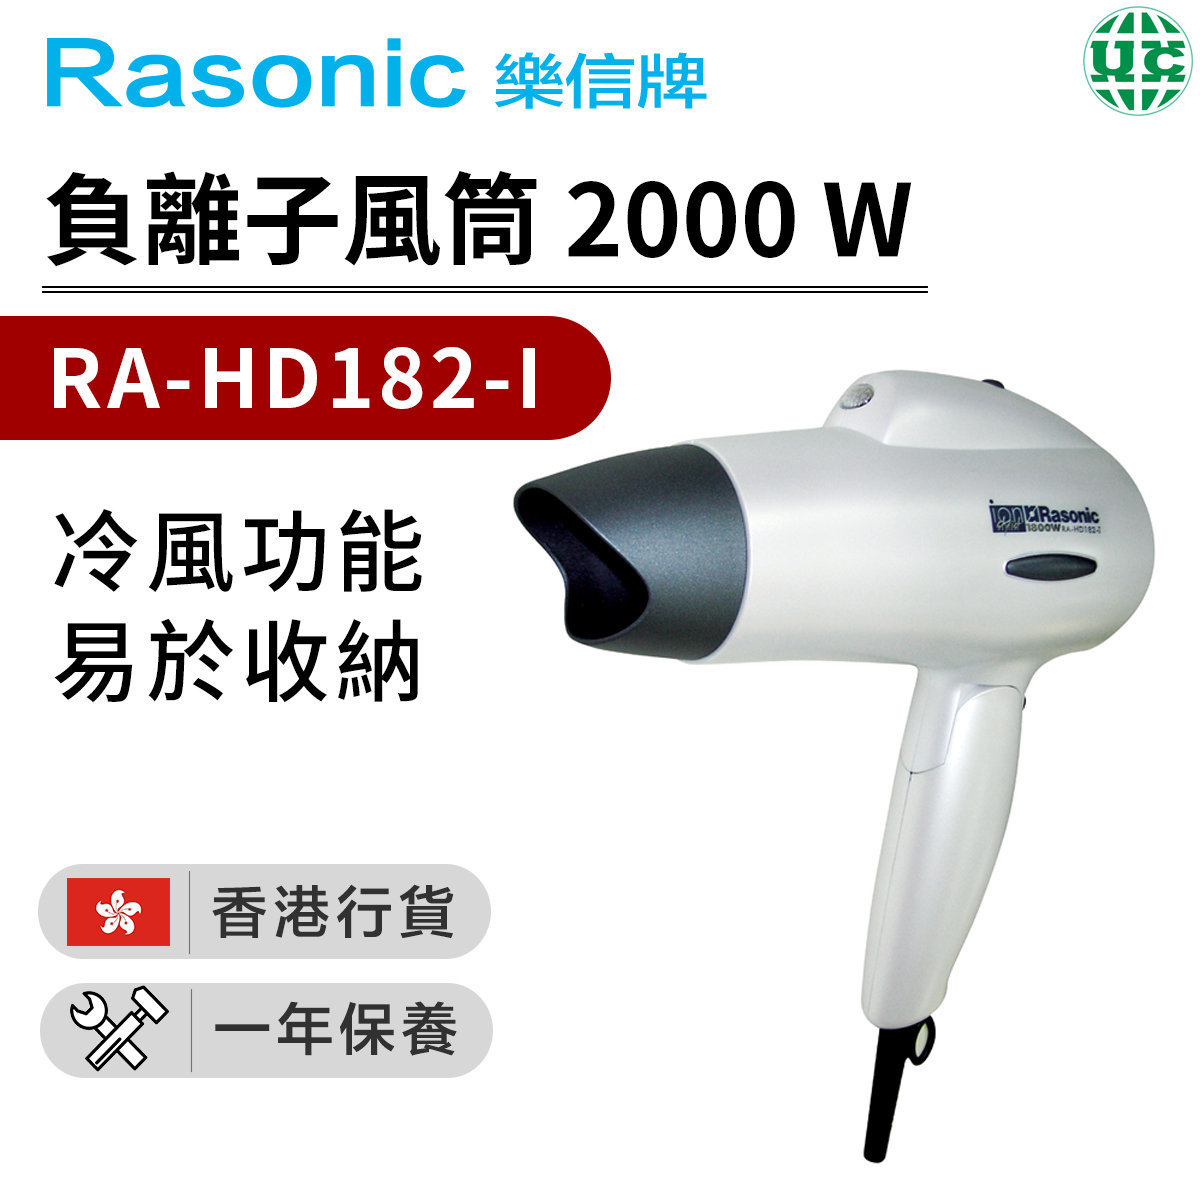 RA-HD182-I Anion Hair Dryer (Hong Kong licensed)